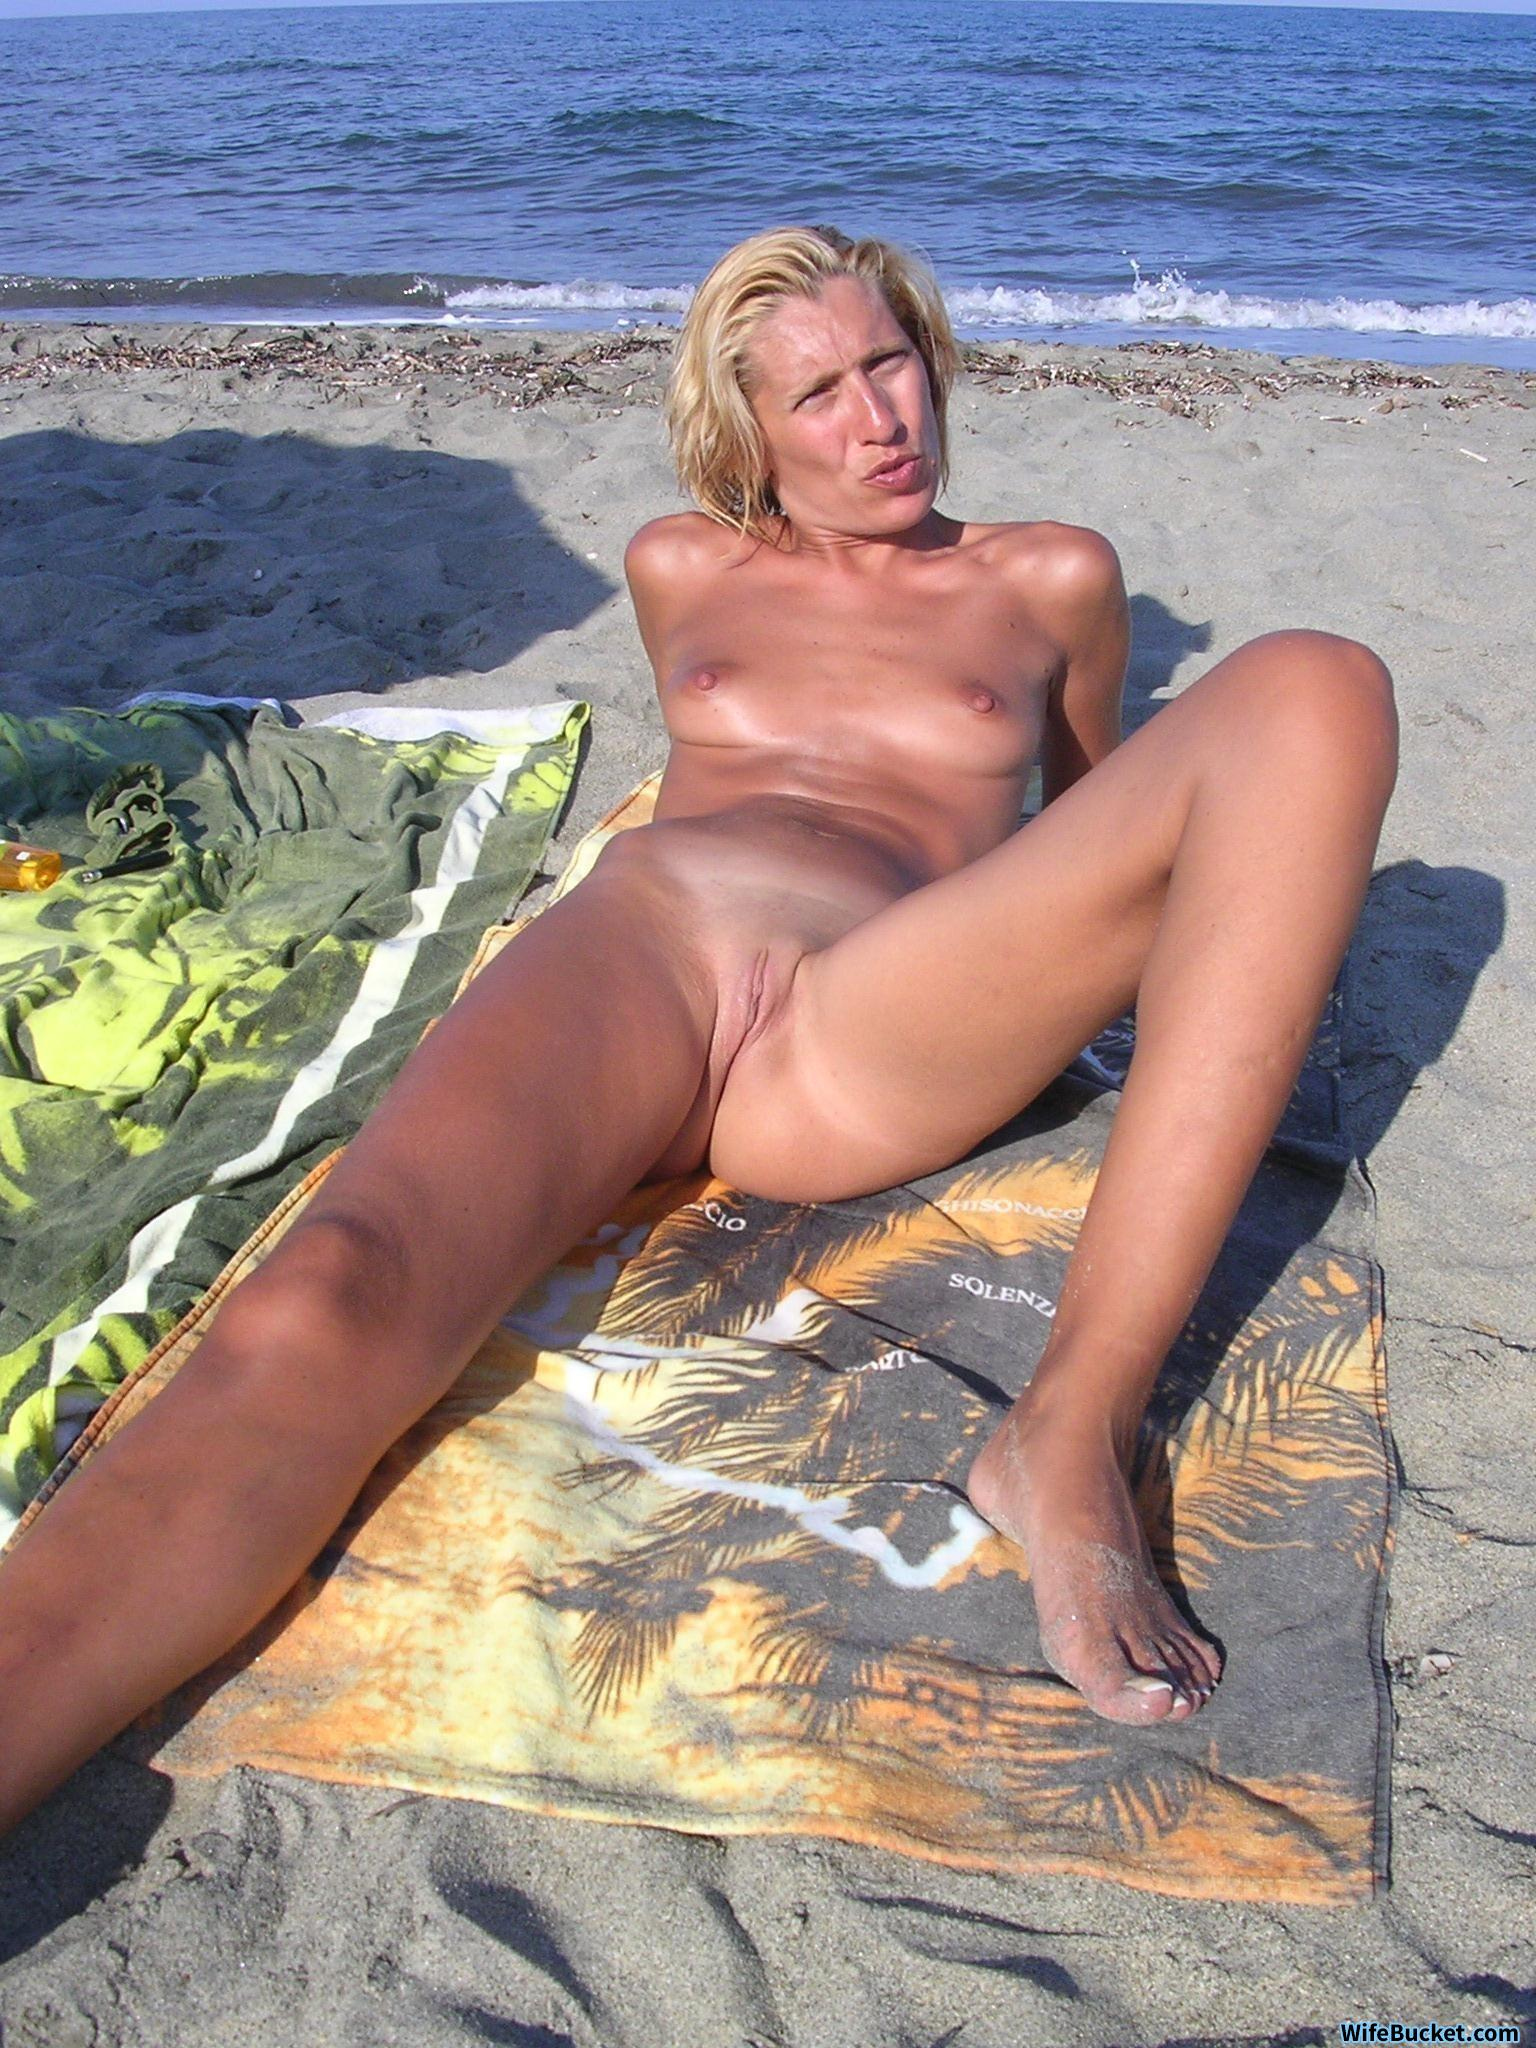 beach pics Nude slut wife caption